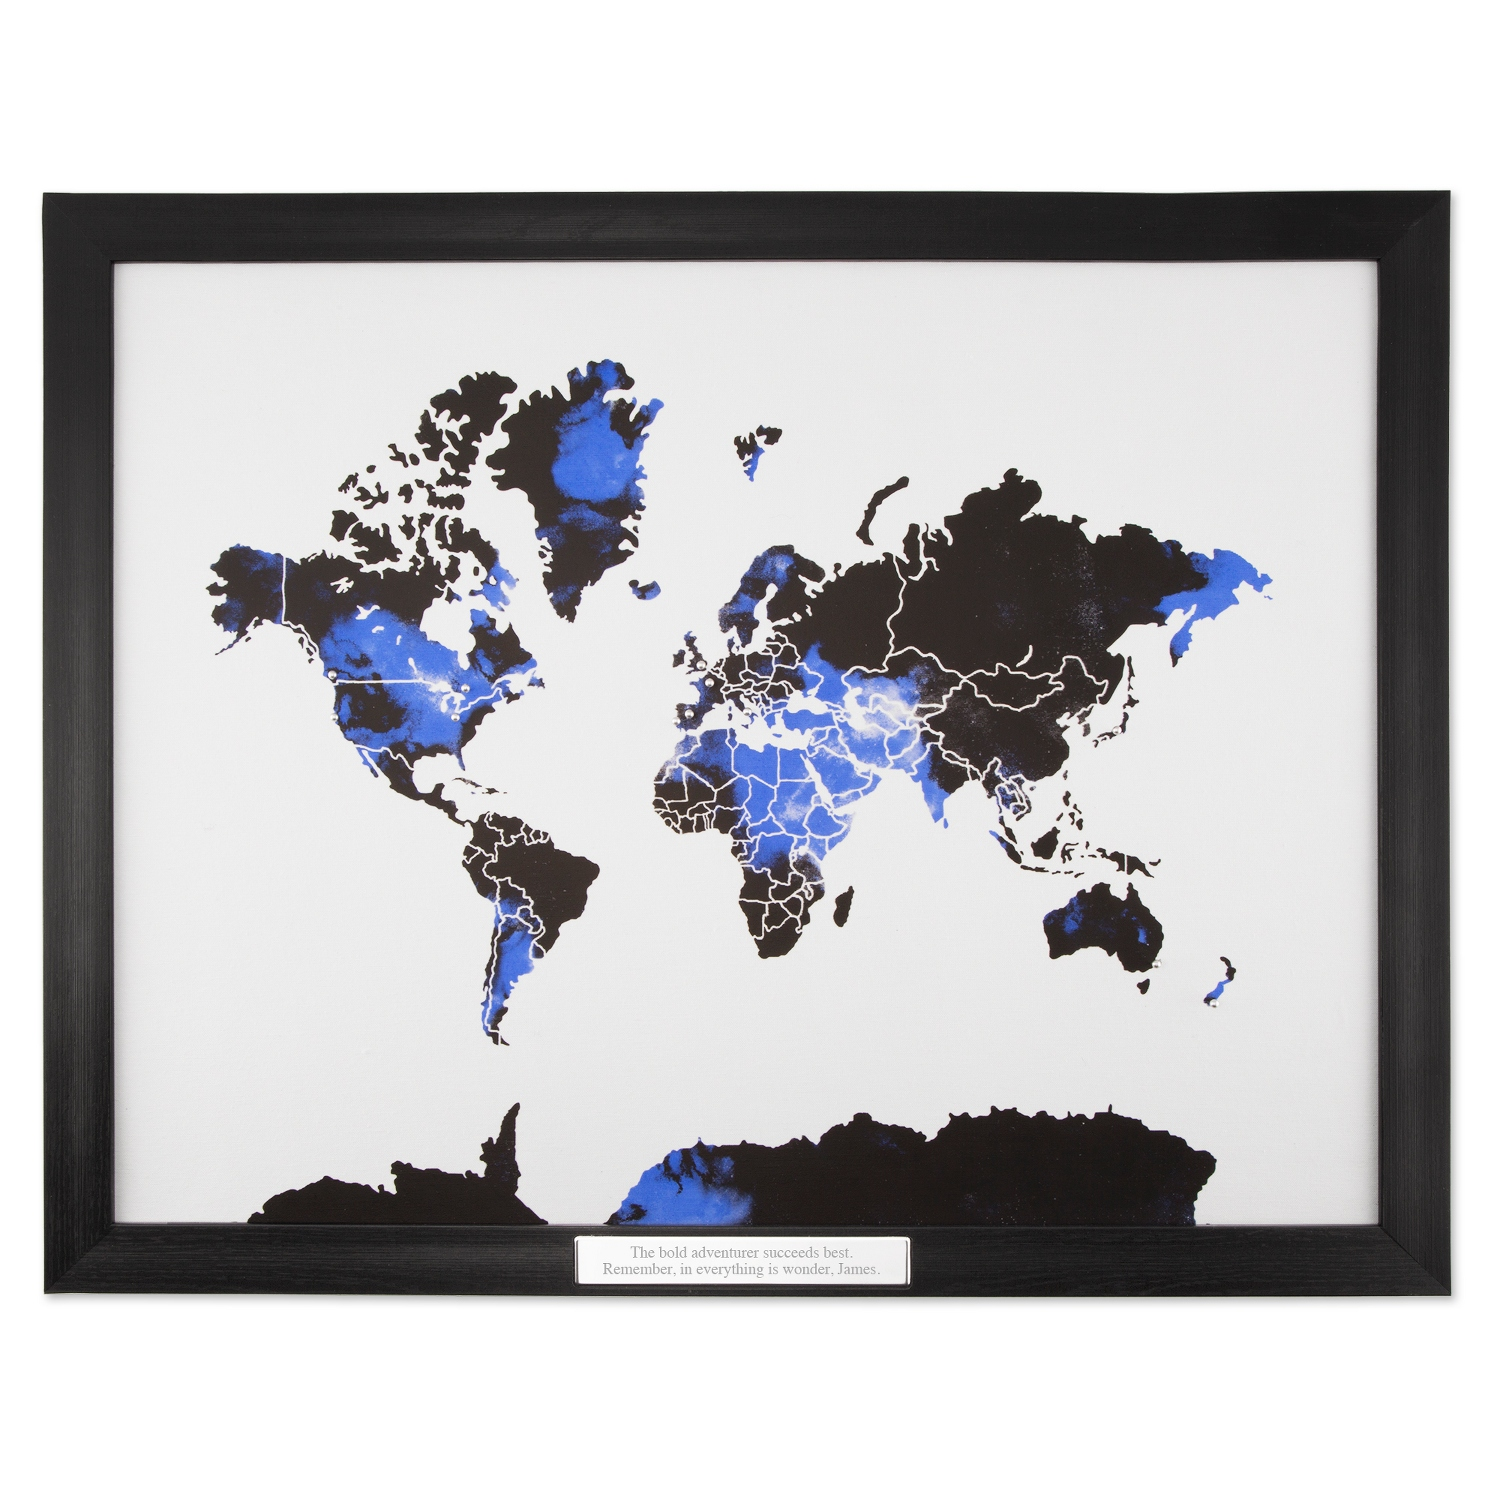 World map framed print watercolor world map framed print gumiabroncs Image collections